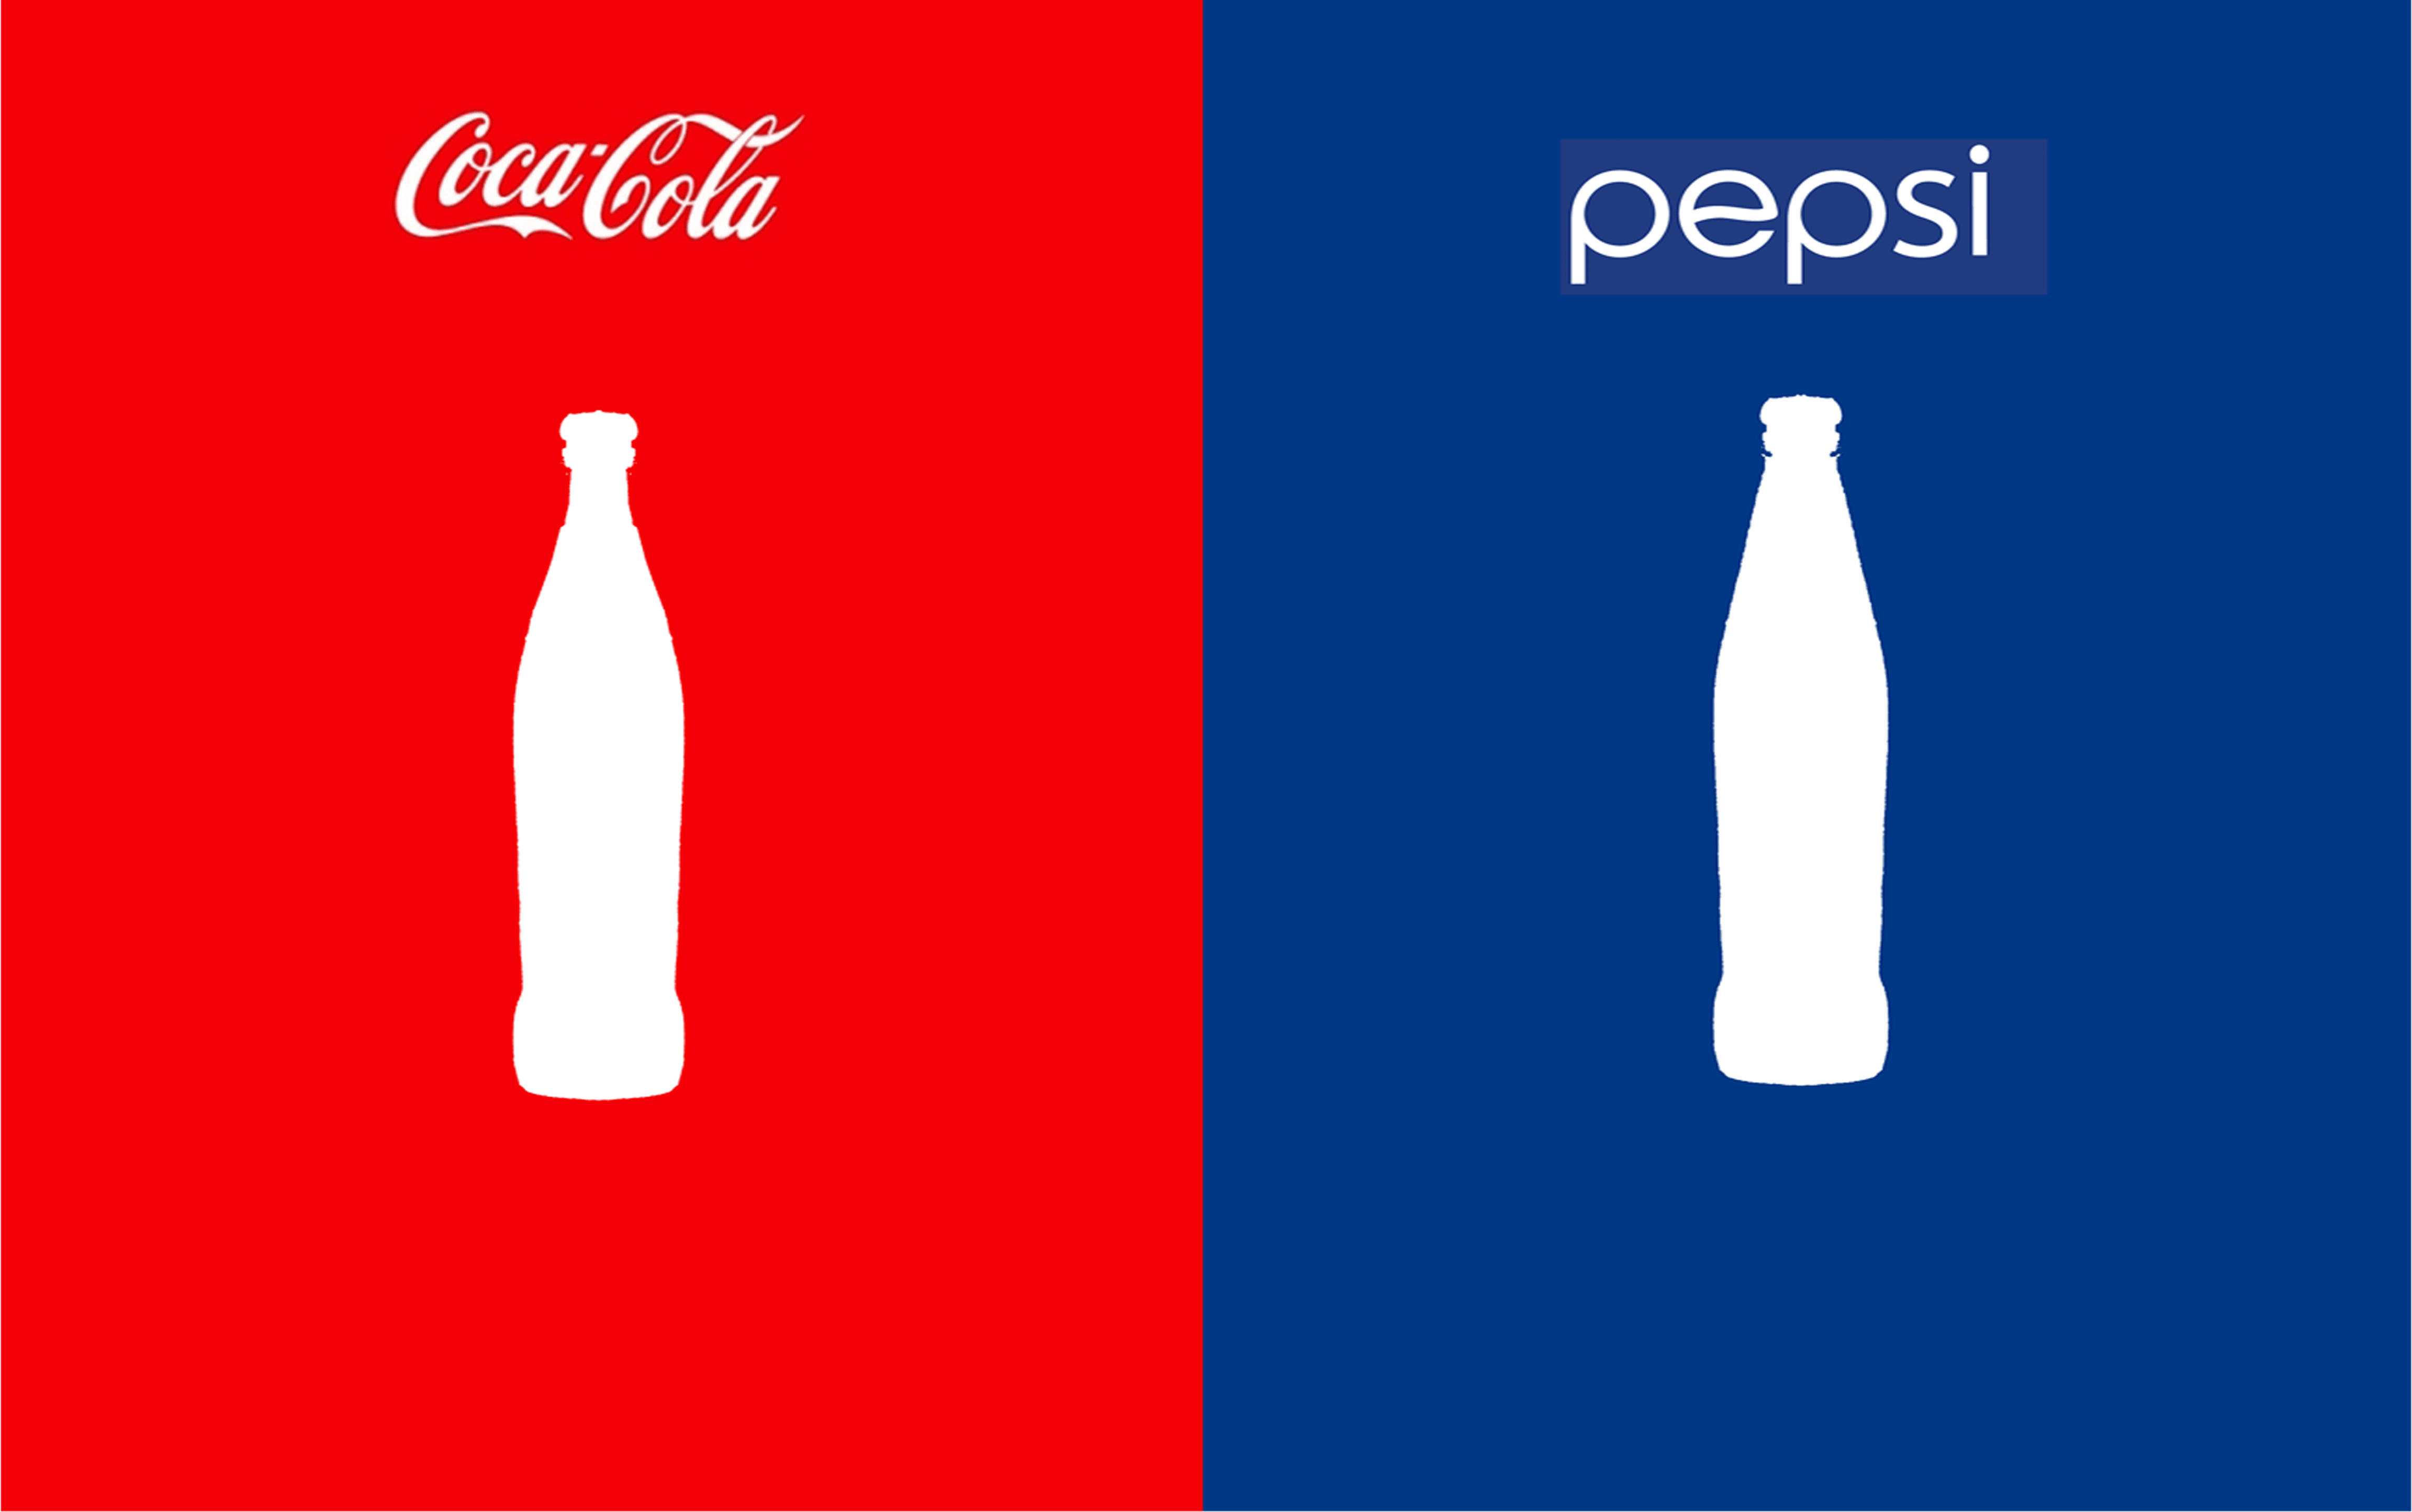 capital budgeting pepsi and coke Coca-cola, or coke, is a follow-up taste tests revealed most consumers preferred the taste of new coke to both coke and pepsi but coca-cola management was.